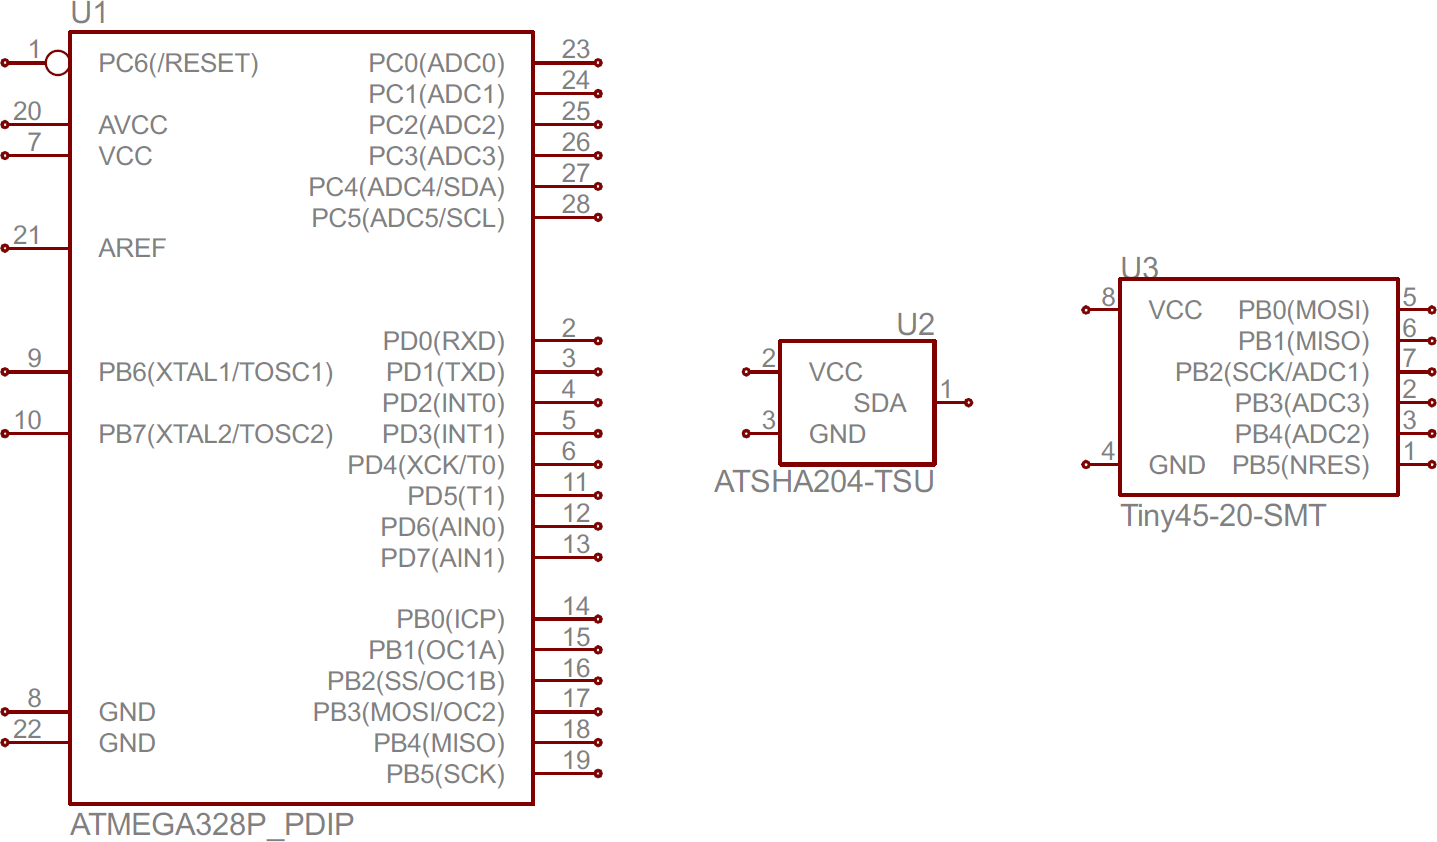 how to read a schematic learn sparkfun comatmega328, atsha204, and attiny45 ic symbols schematic